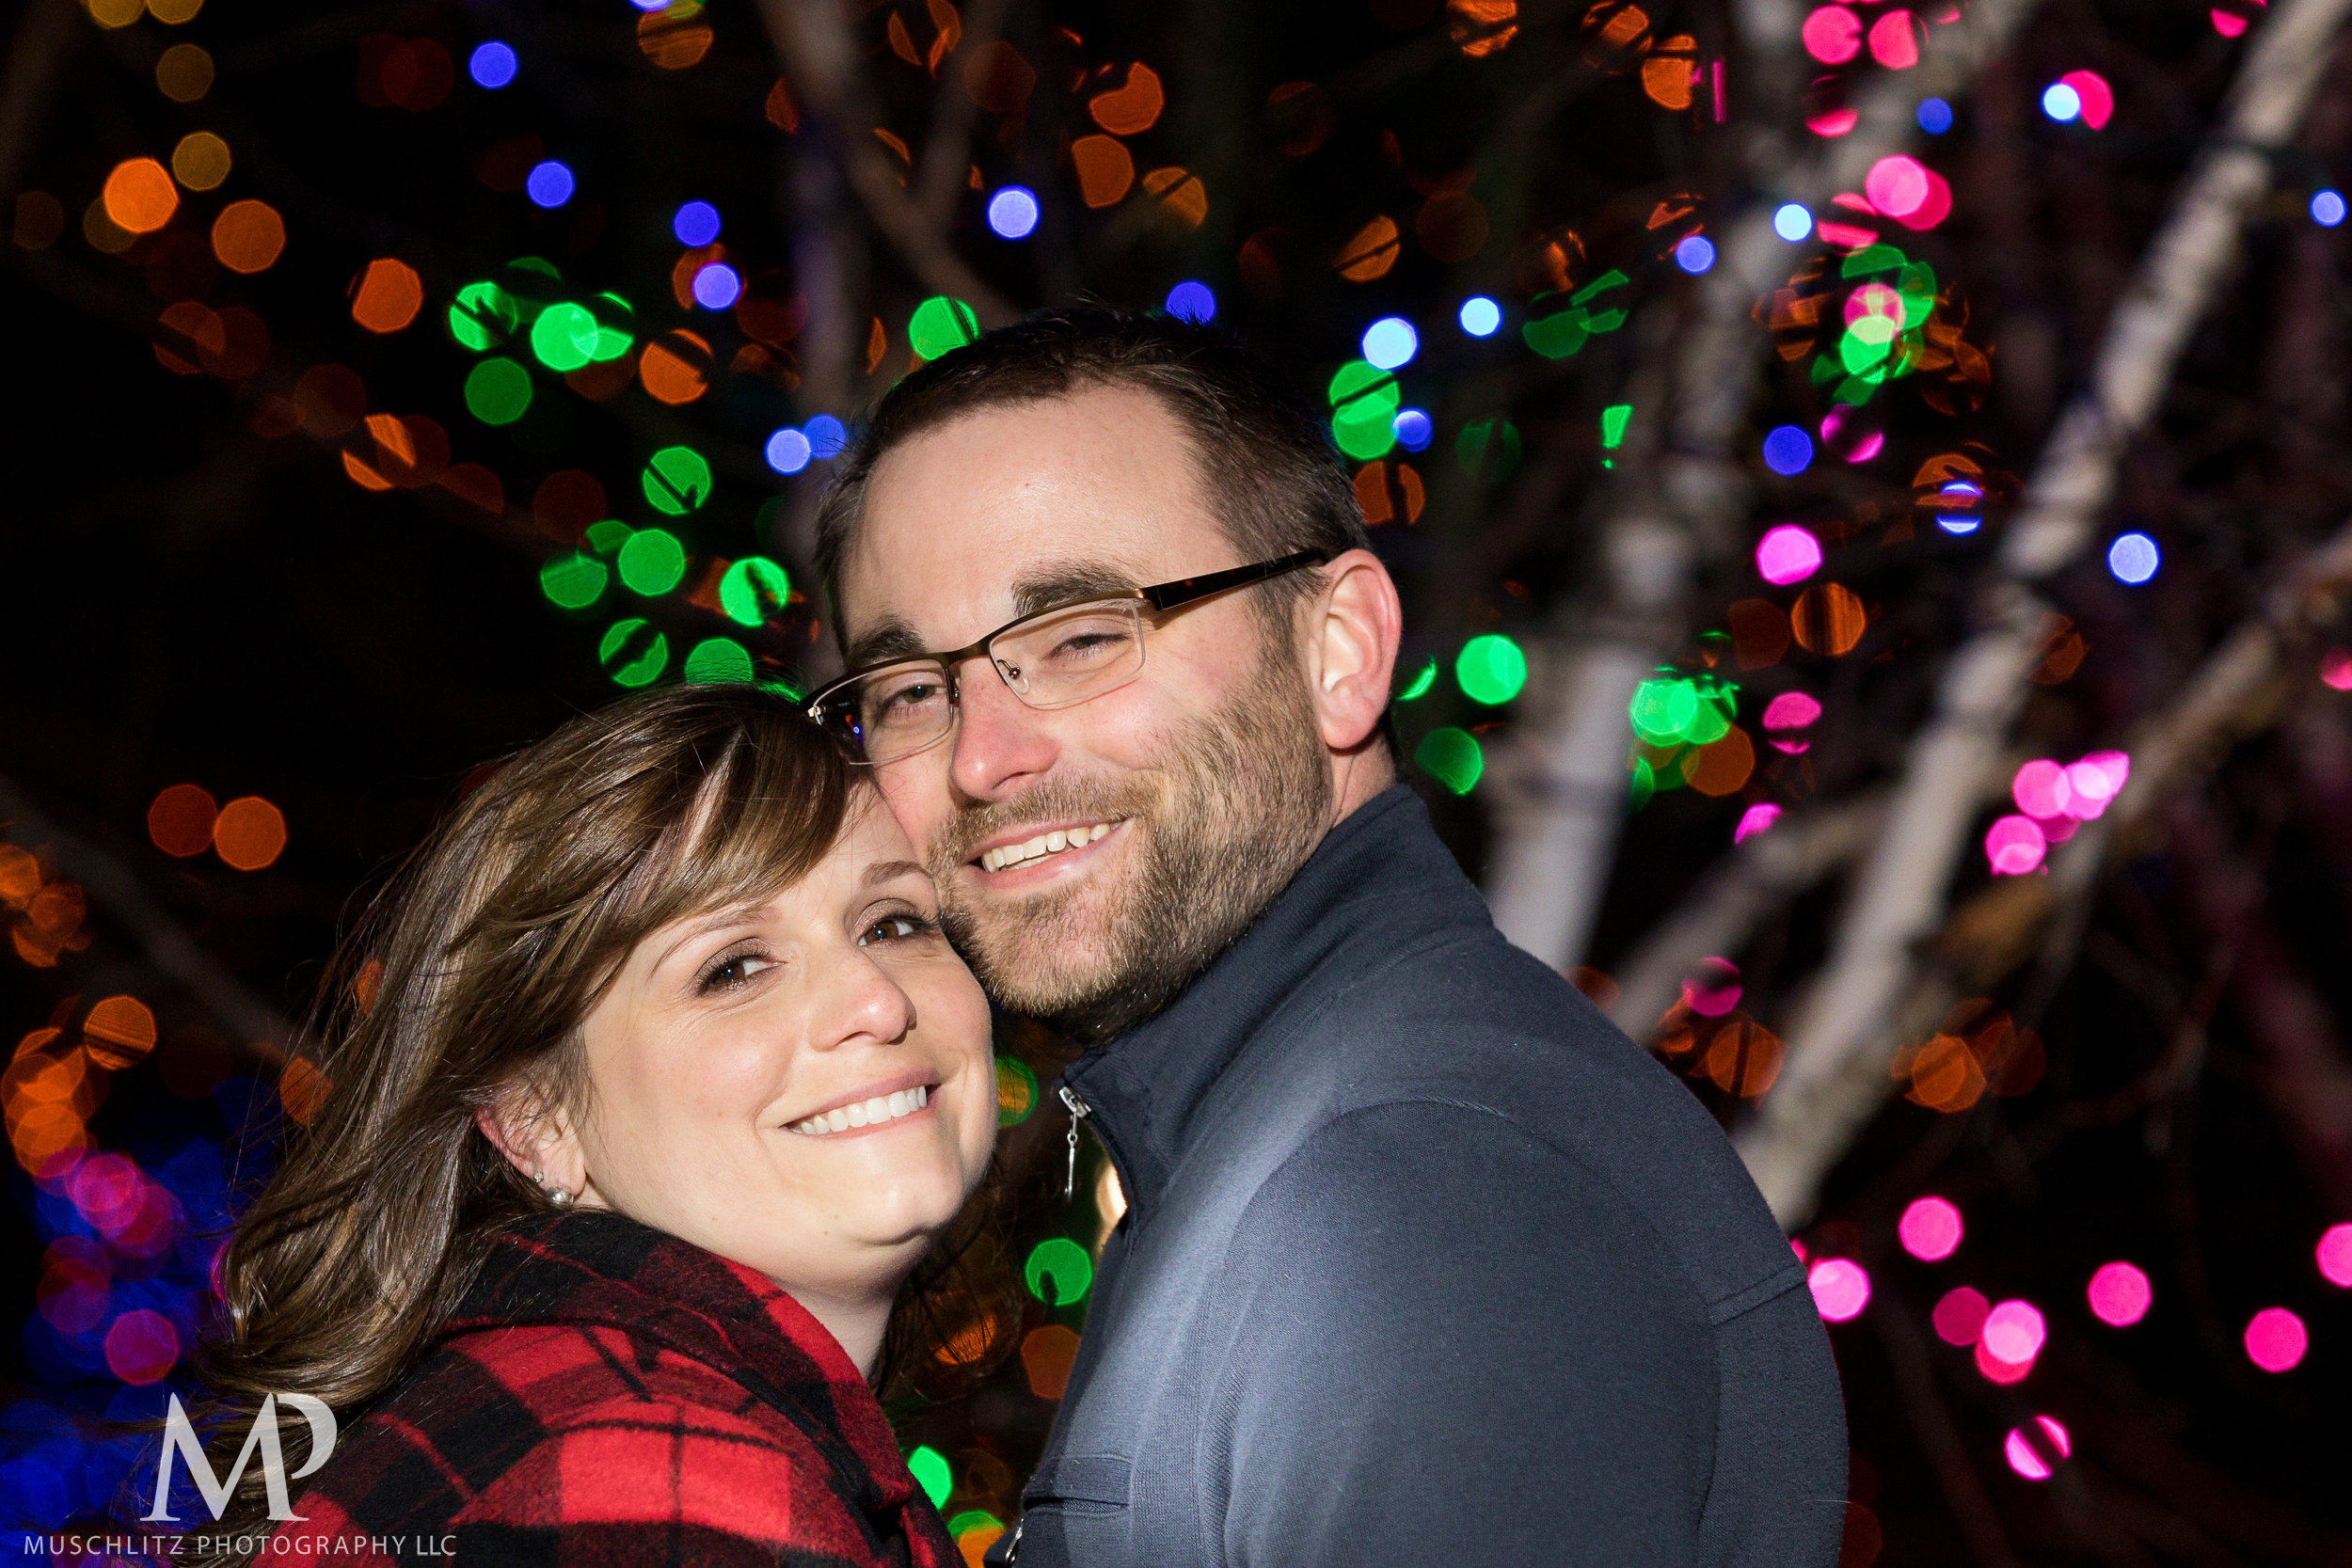 bicentennial-park-engagement-session-holiday-portraits-columbus-ohio-062.JPG